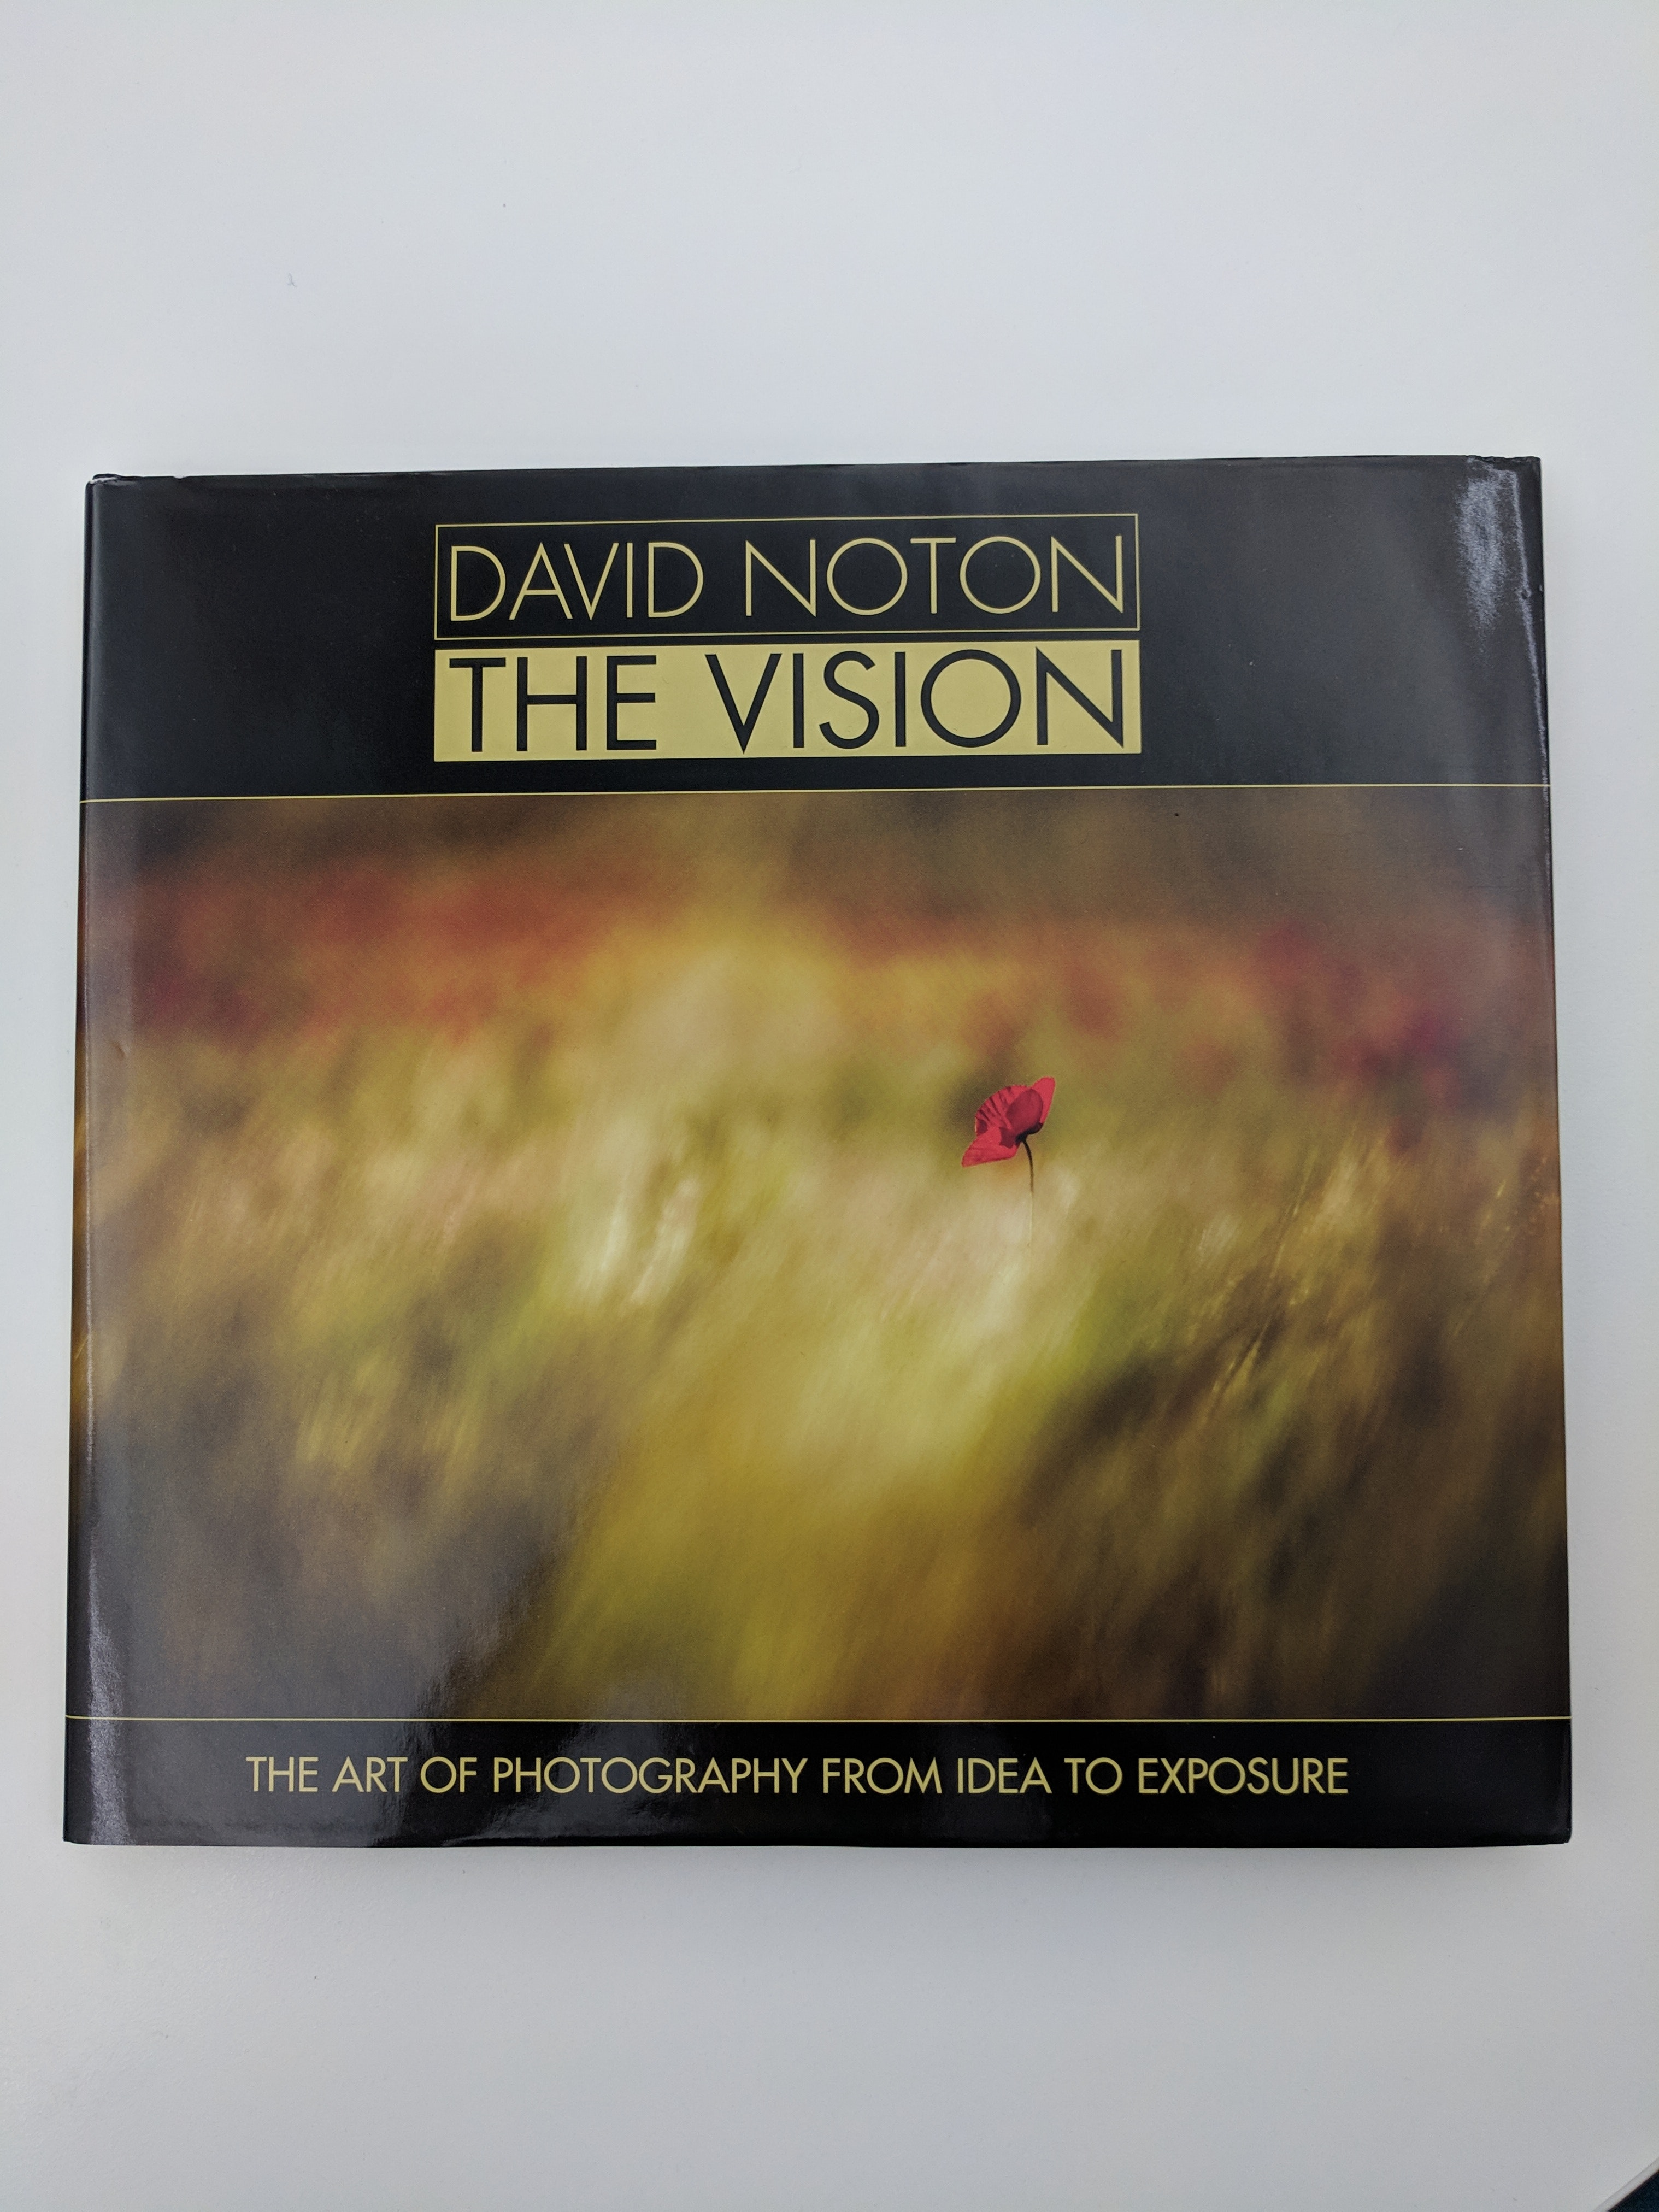 The Vision Book sweepstakes